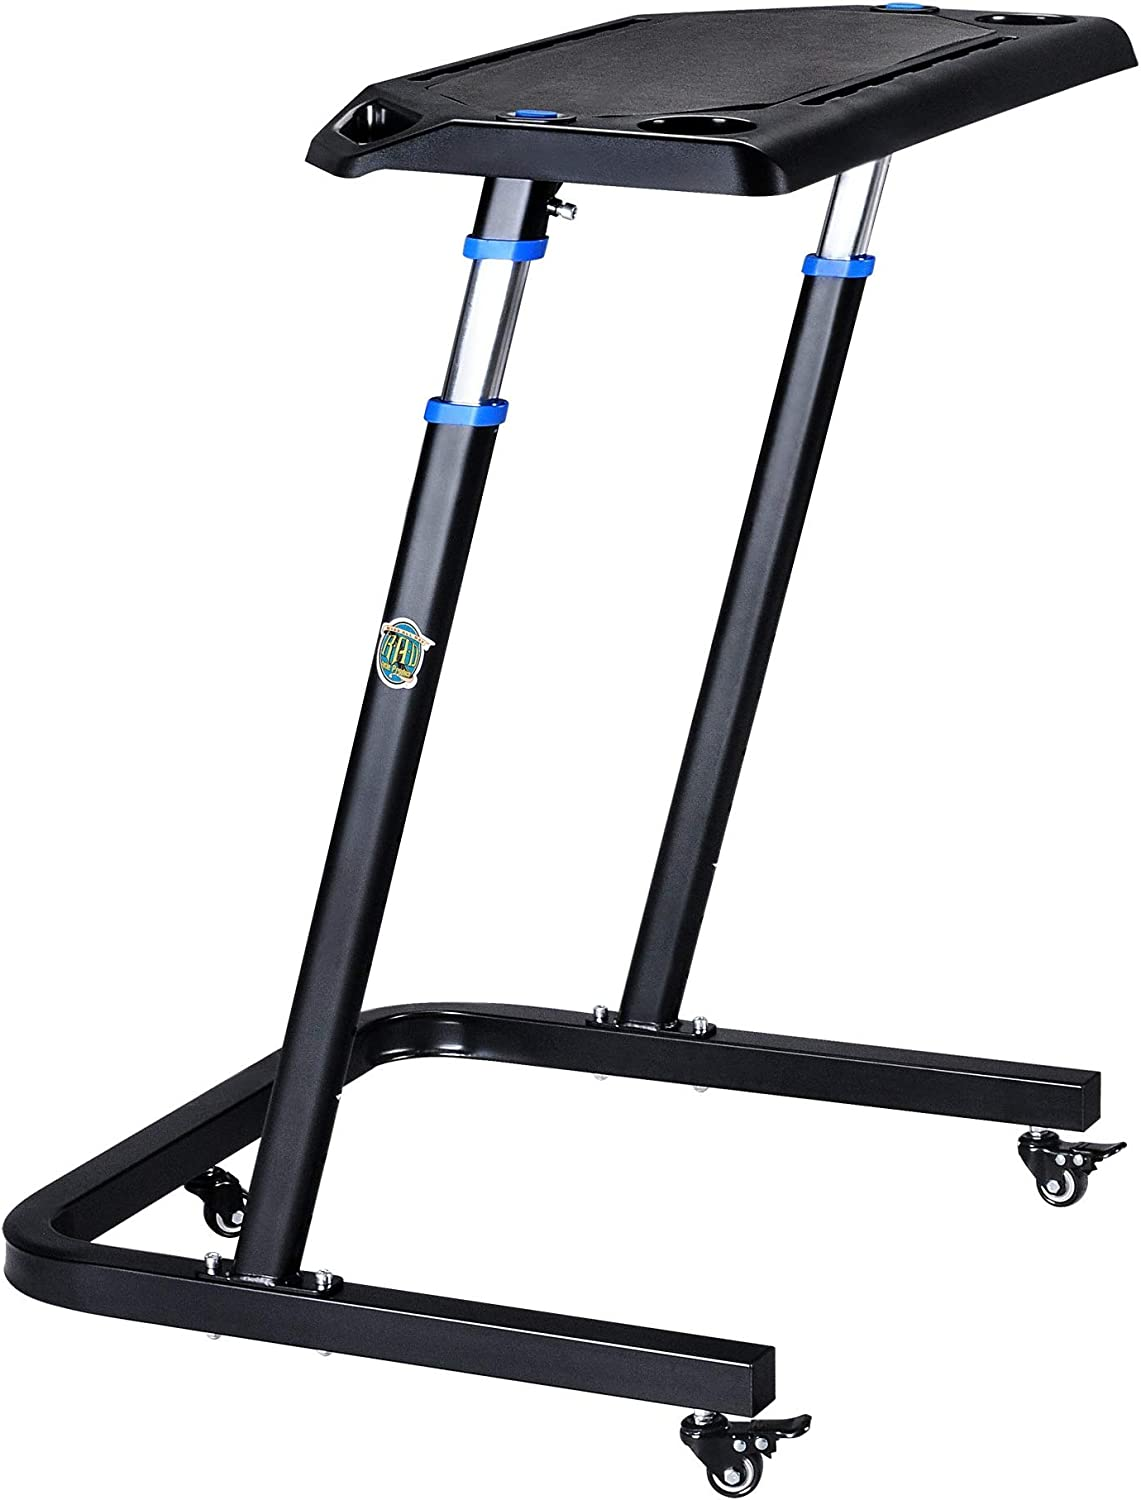 RAD Cycle Products Adjustable Bike Trainer Fitness Desk